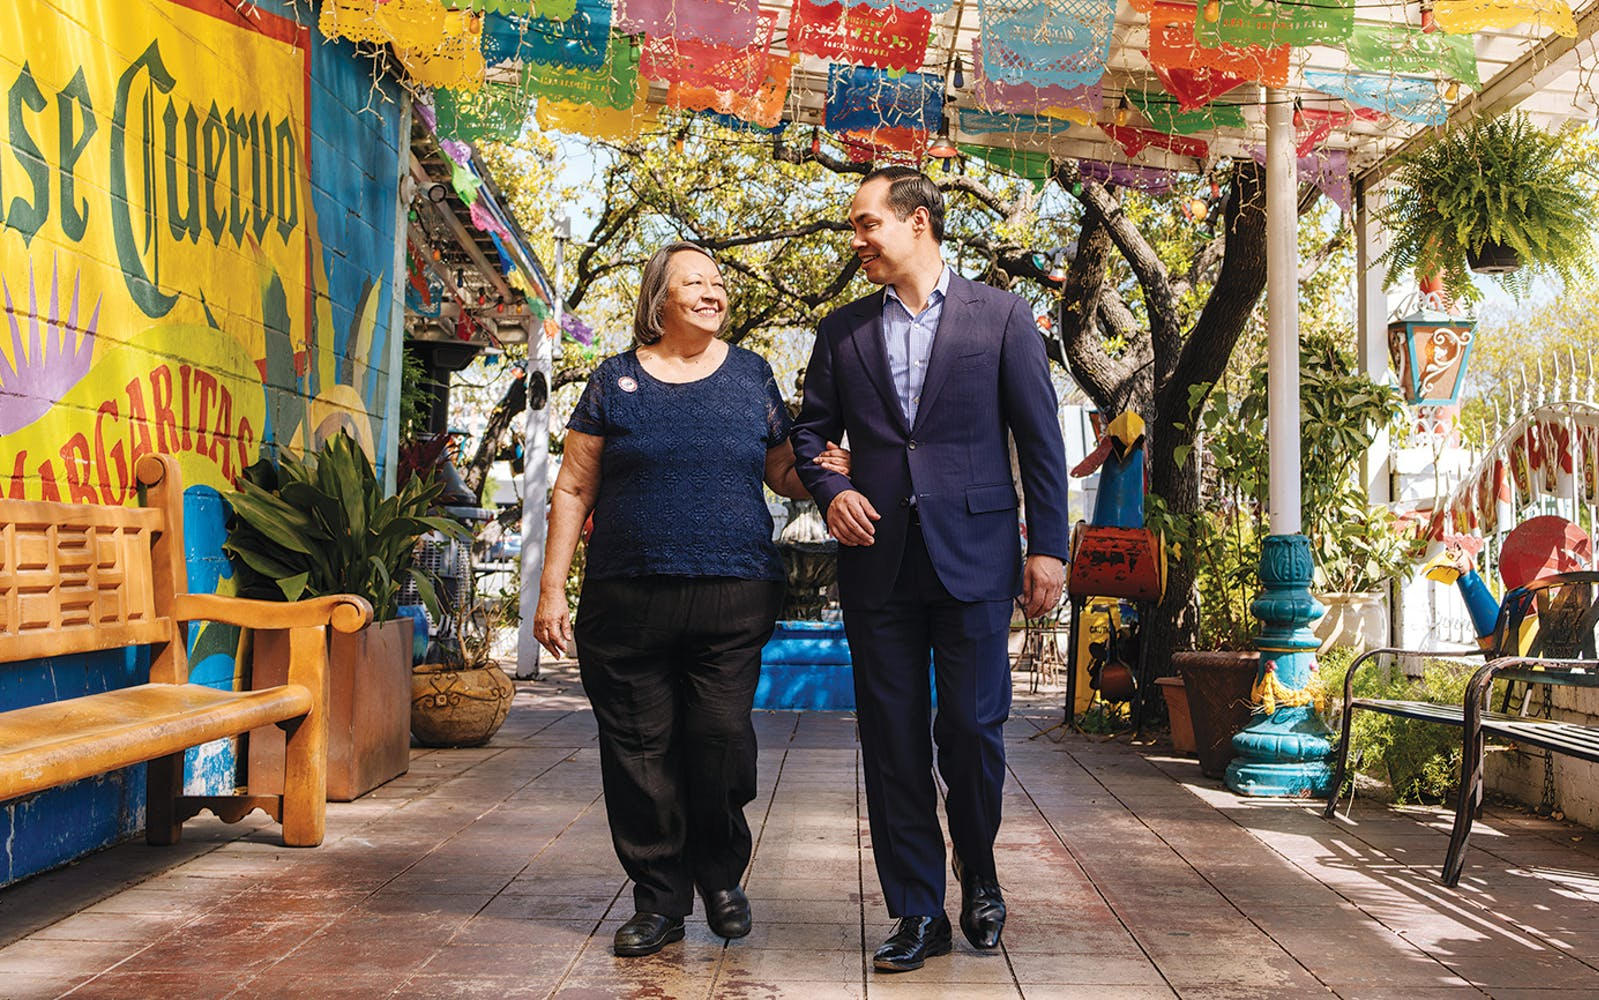 Rosie and Julián Castro at Pico de Gallo, in San Antonio, on March 21, 2019.